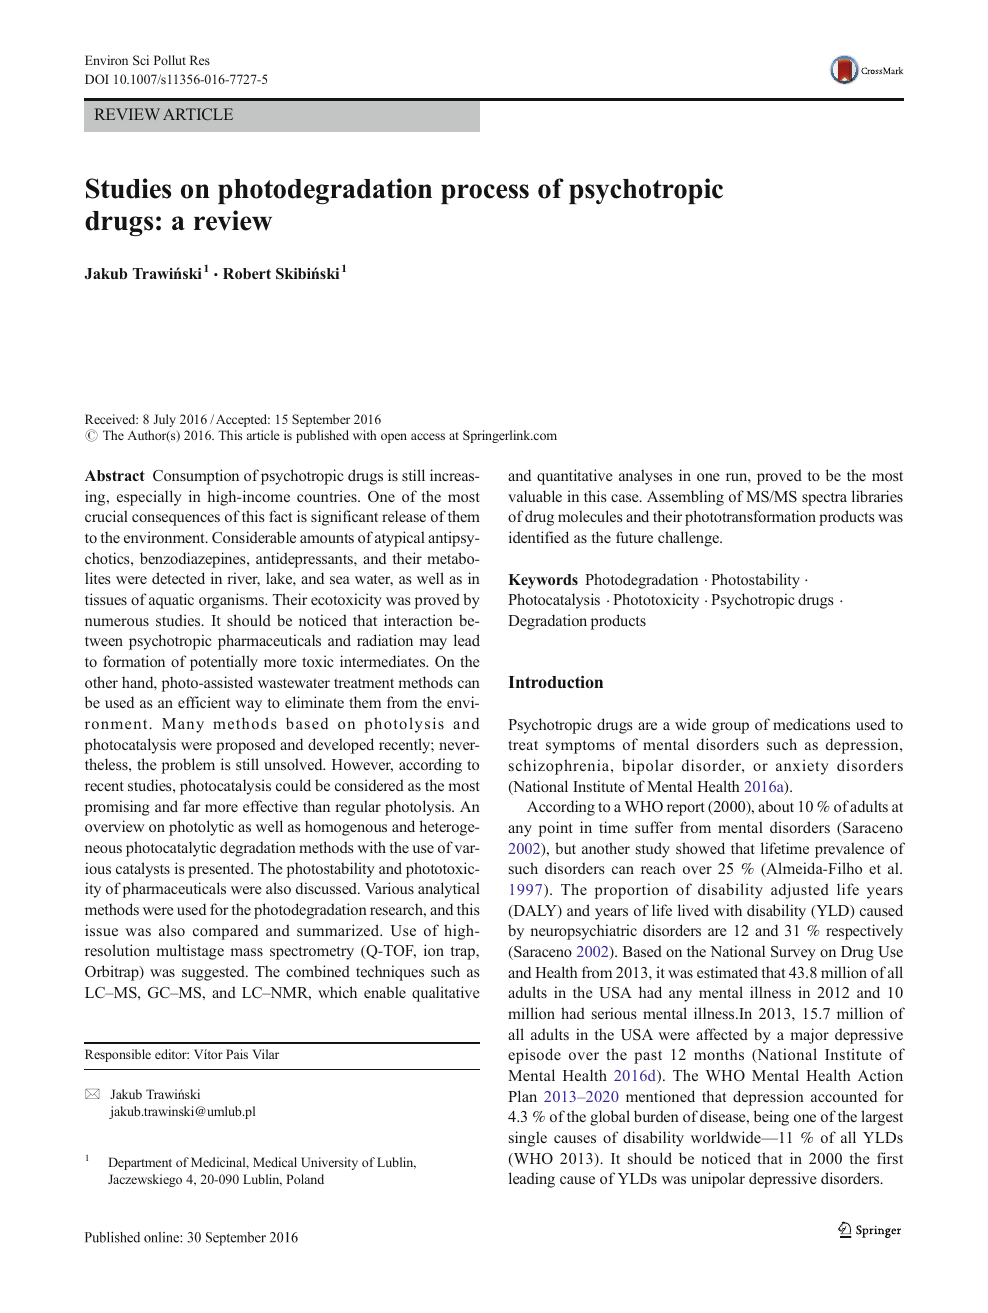 Studies on photodegradation process of psychotropic drugs: a